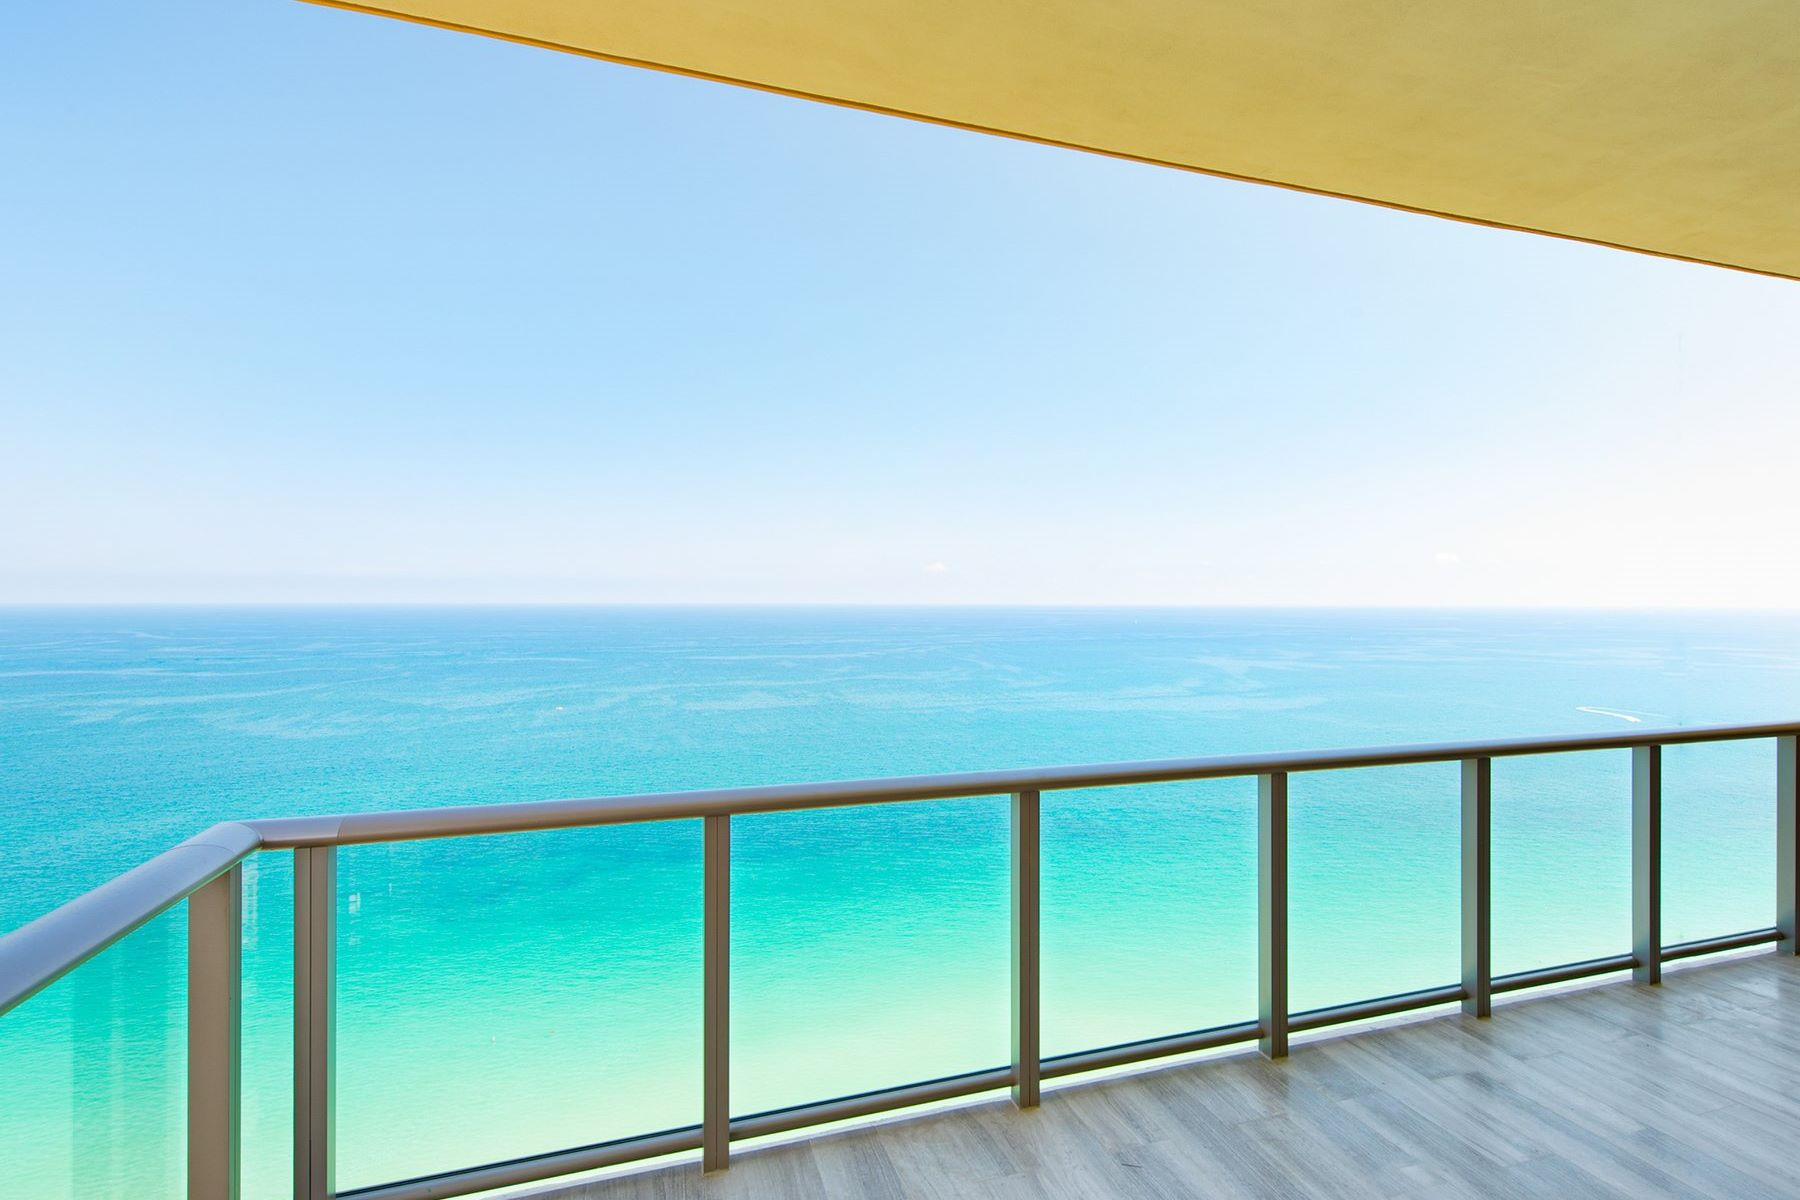 Condominium for Sale at Mansions at Acqualina 17749 COLLINS AVE UNIT#3001 Sunny Isles Beach, Florida 33160 United States